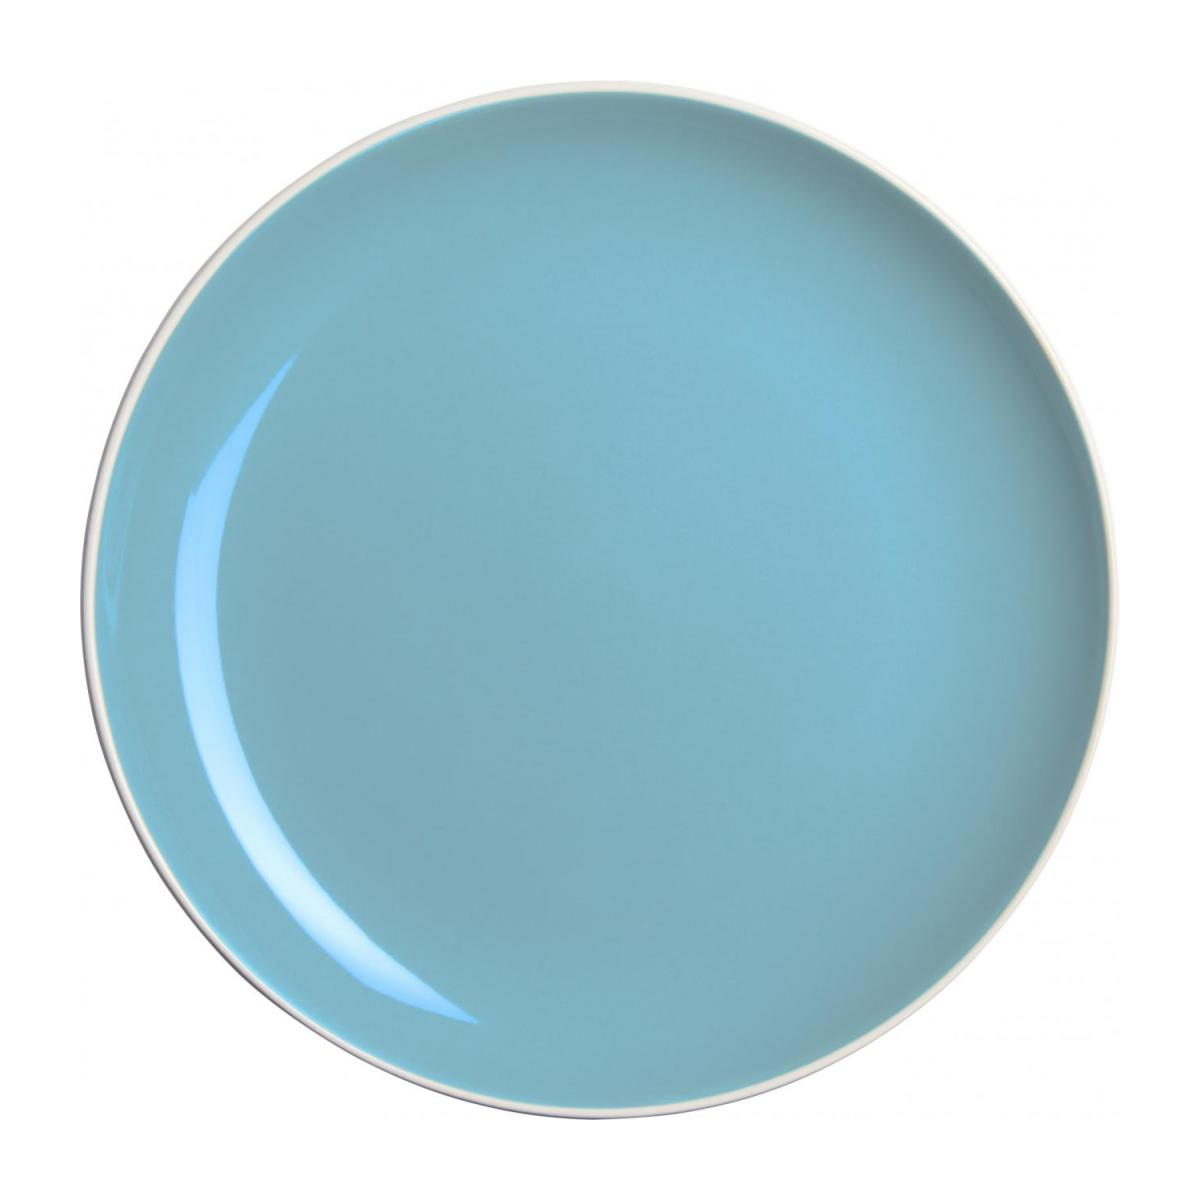 Flat plate made of sandstone, white and light blue n°1